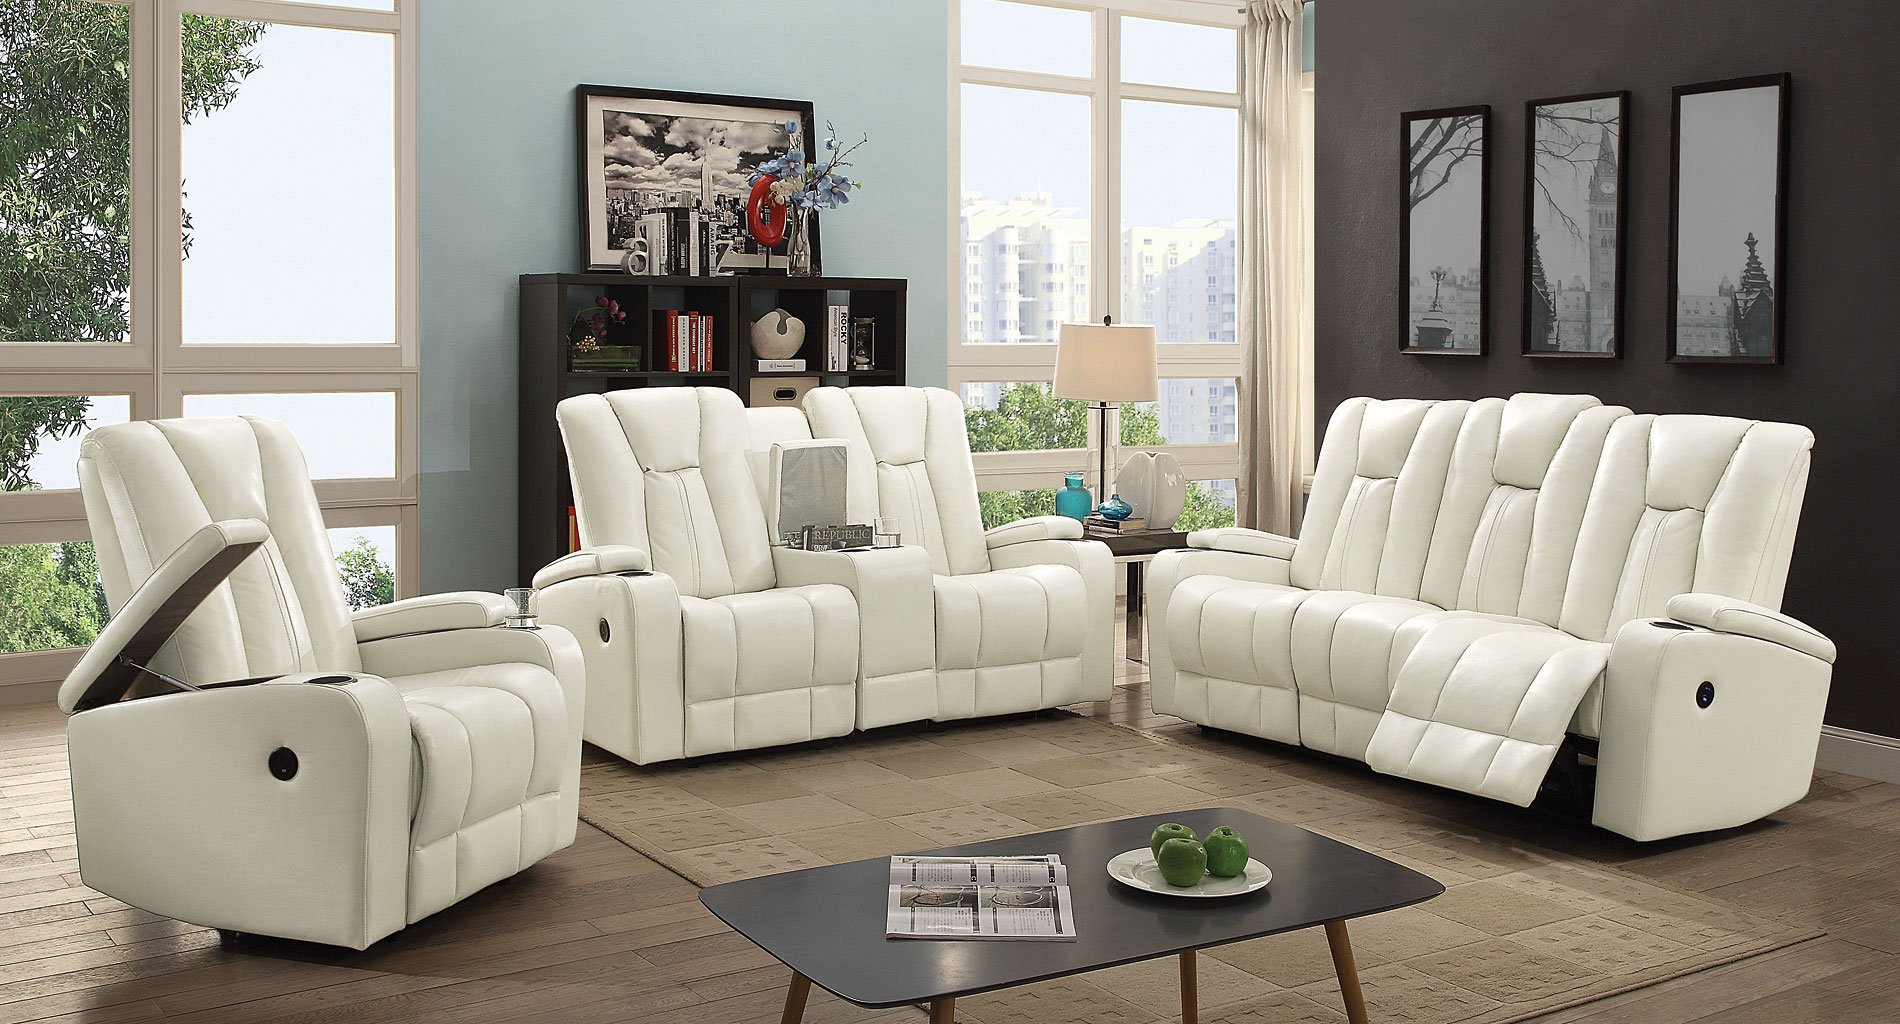 G658 Power Reclining Living Room Set White Glory Furniture